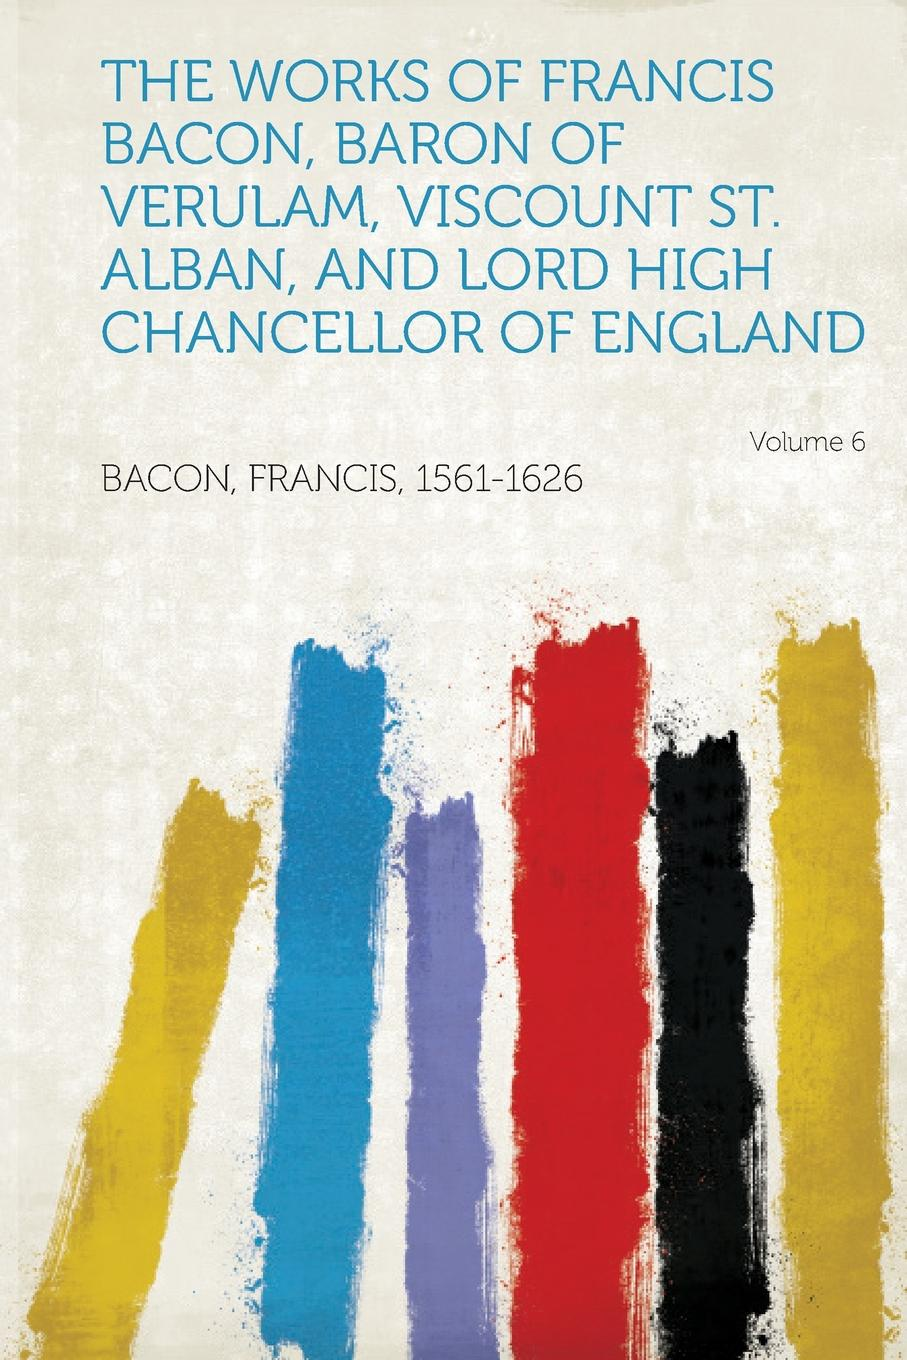 Francis Bacon The Works of Francis Bacon, Baron of Verulam, Viscount St. Alban, and Lord High Chancellor of England Volume 6 фрэнсис бэкон the works of francis bacon volume 11